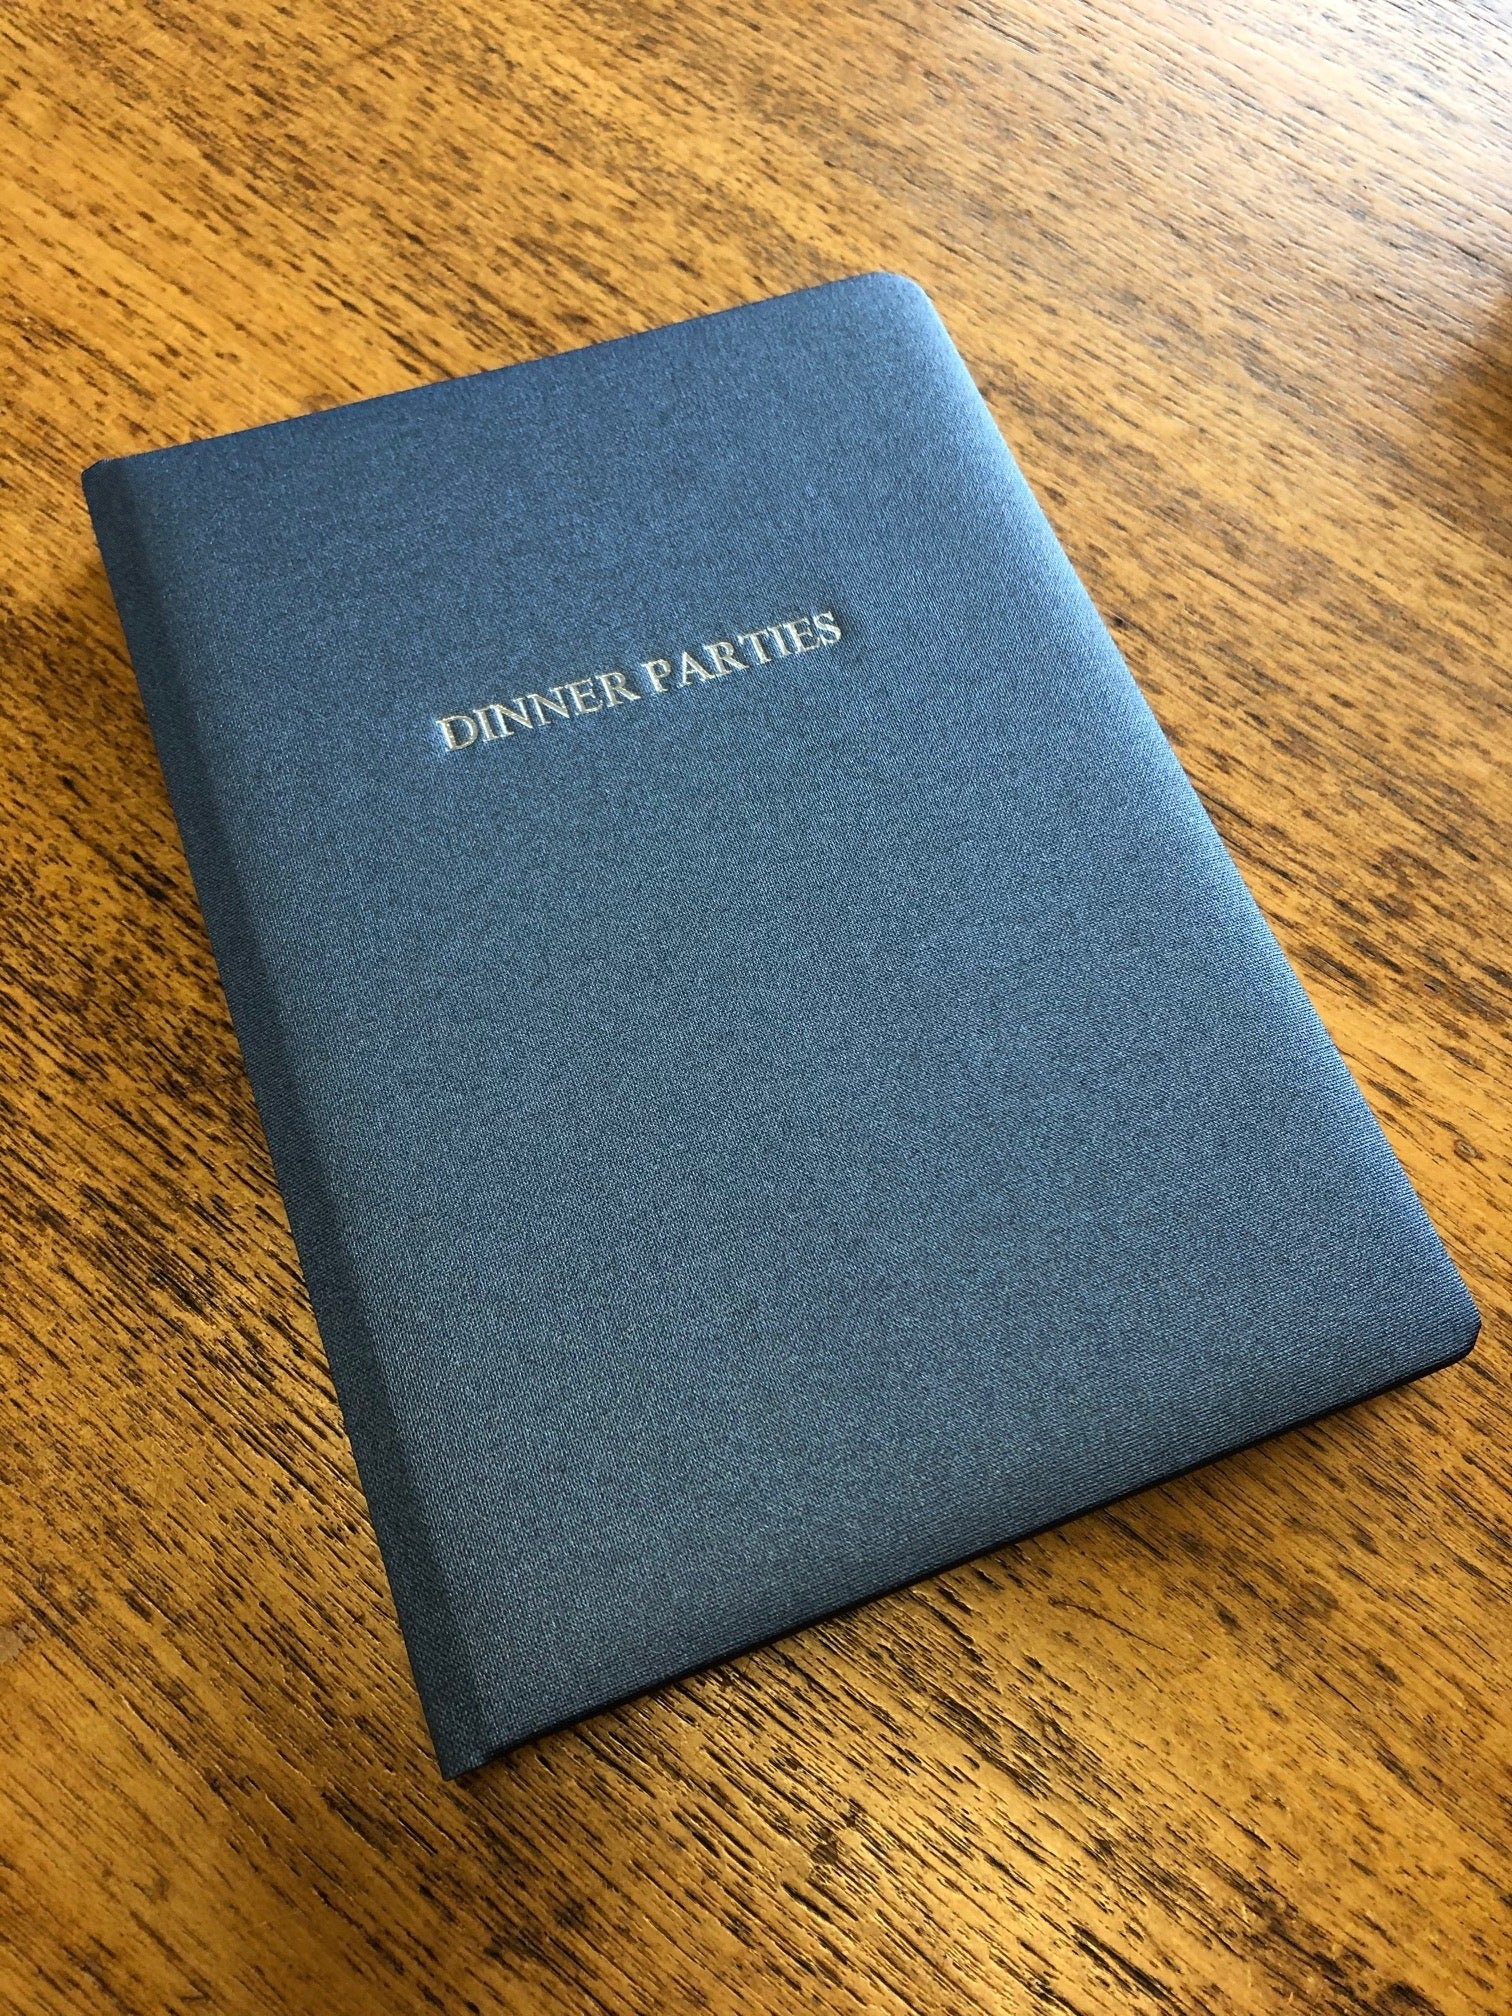 Image Of Metallic Buckram Dinner Party Book in Sapphire